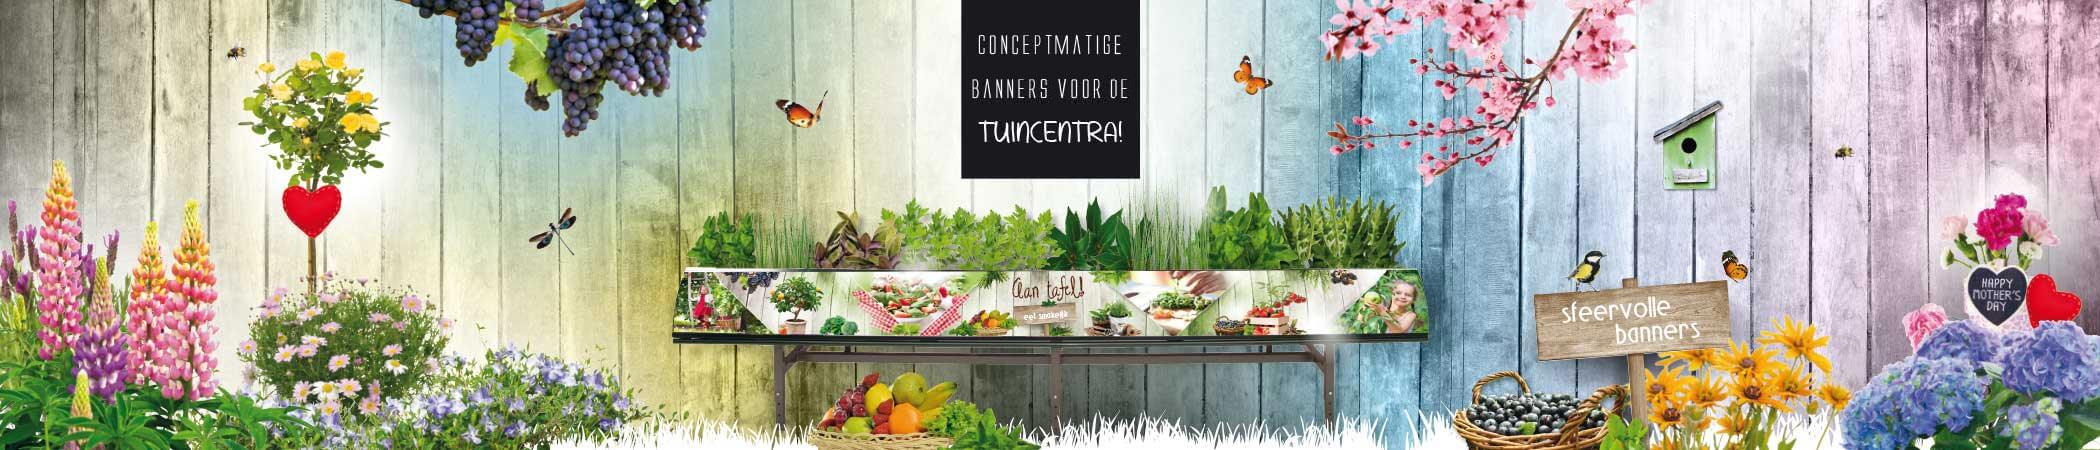 Conceptmatige banners voor dr tuincentra